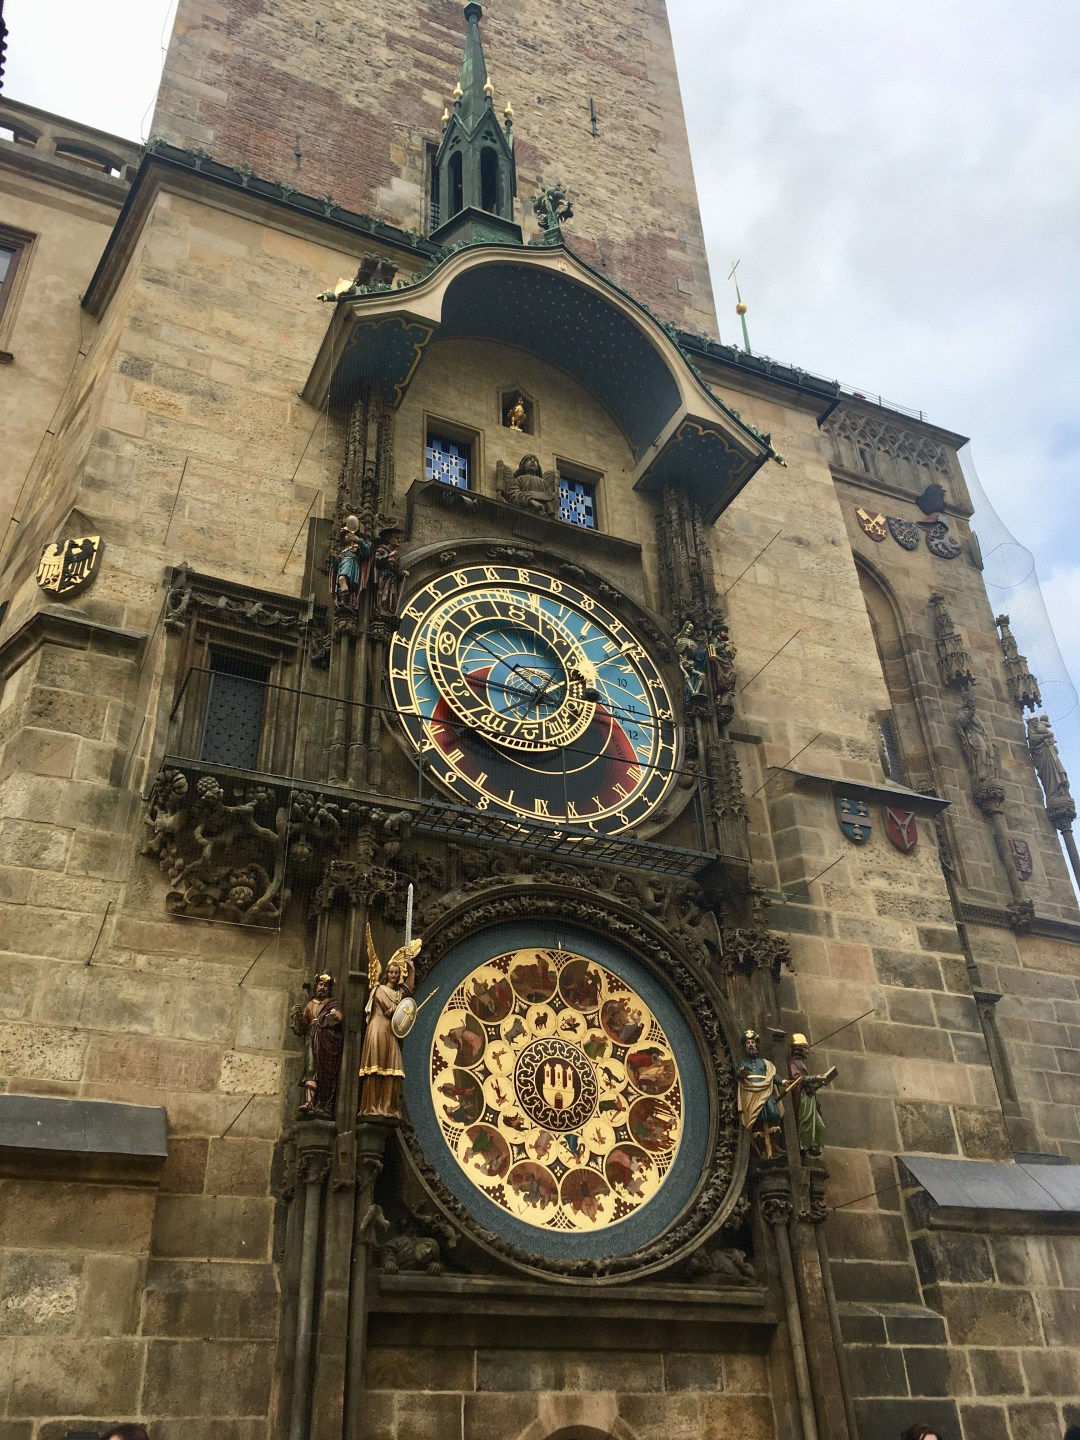 Prague's Astronomical Clock, 600 year old top tourist attraction in the Czech Republic capital